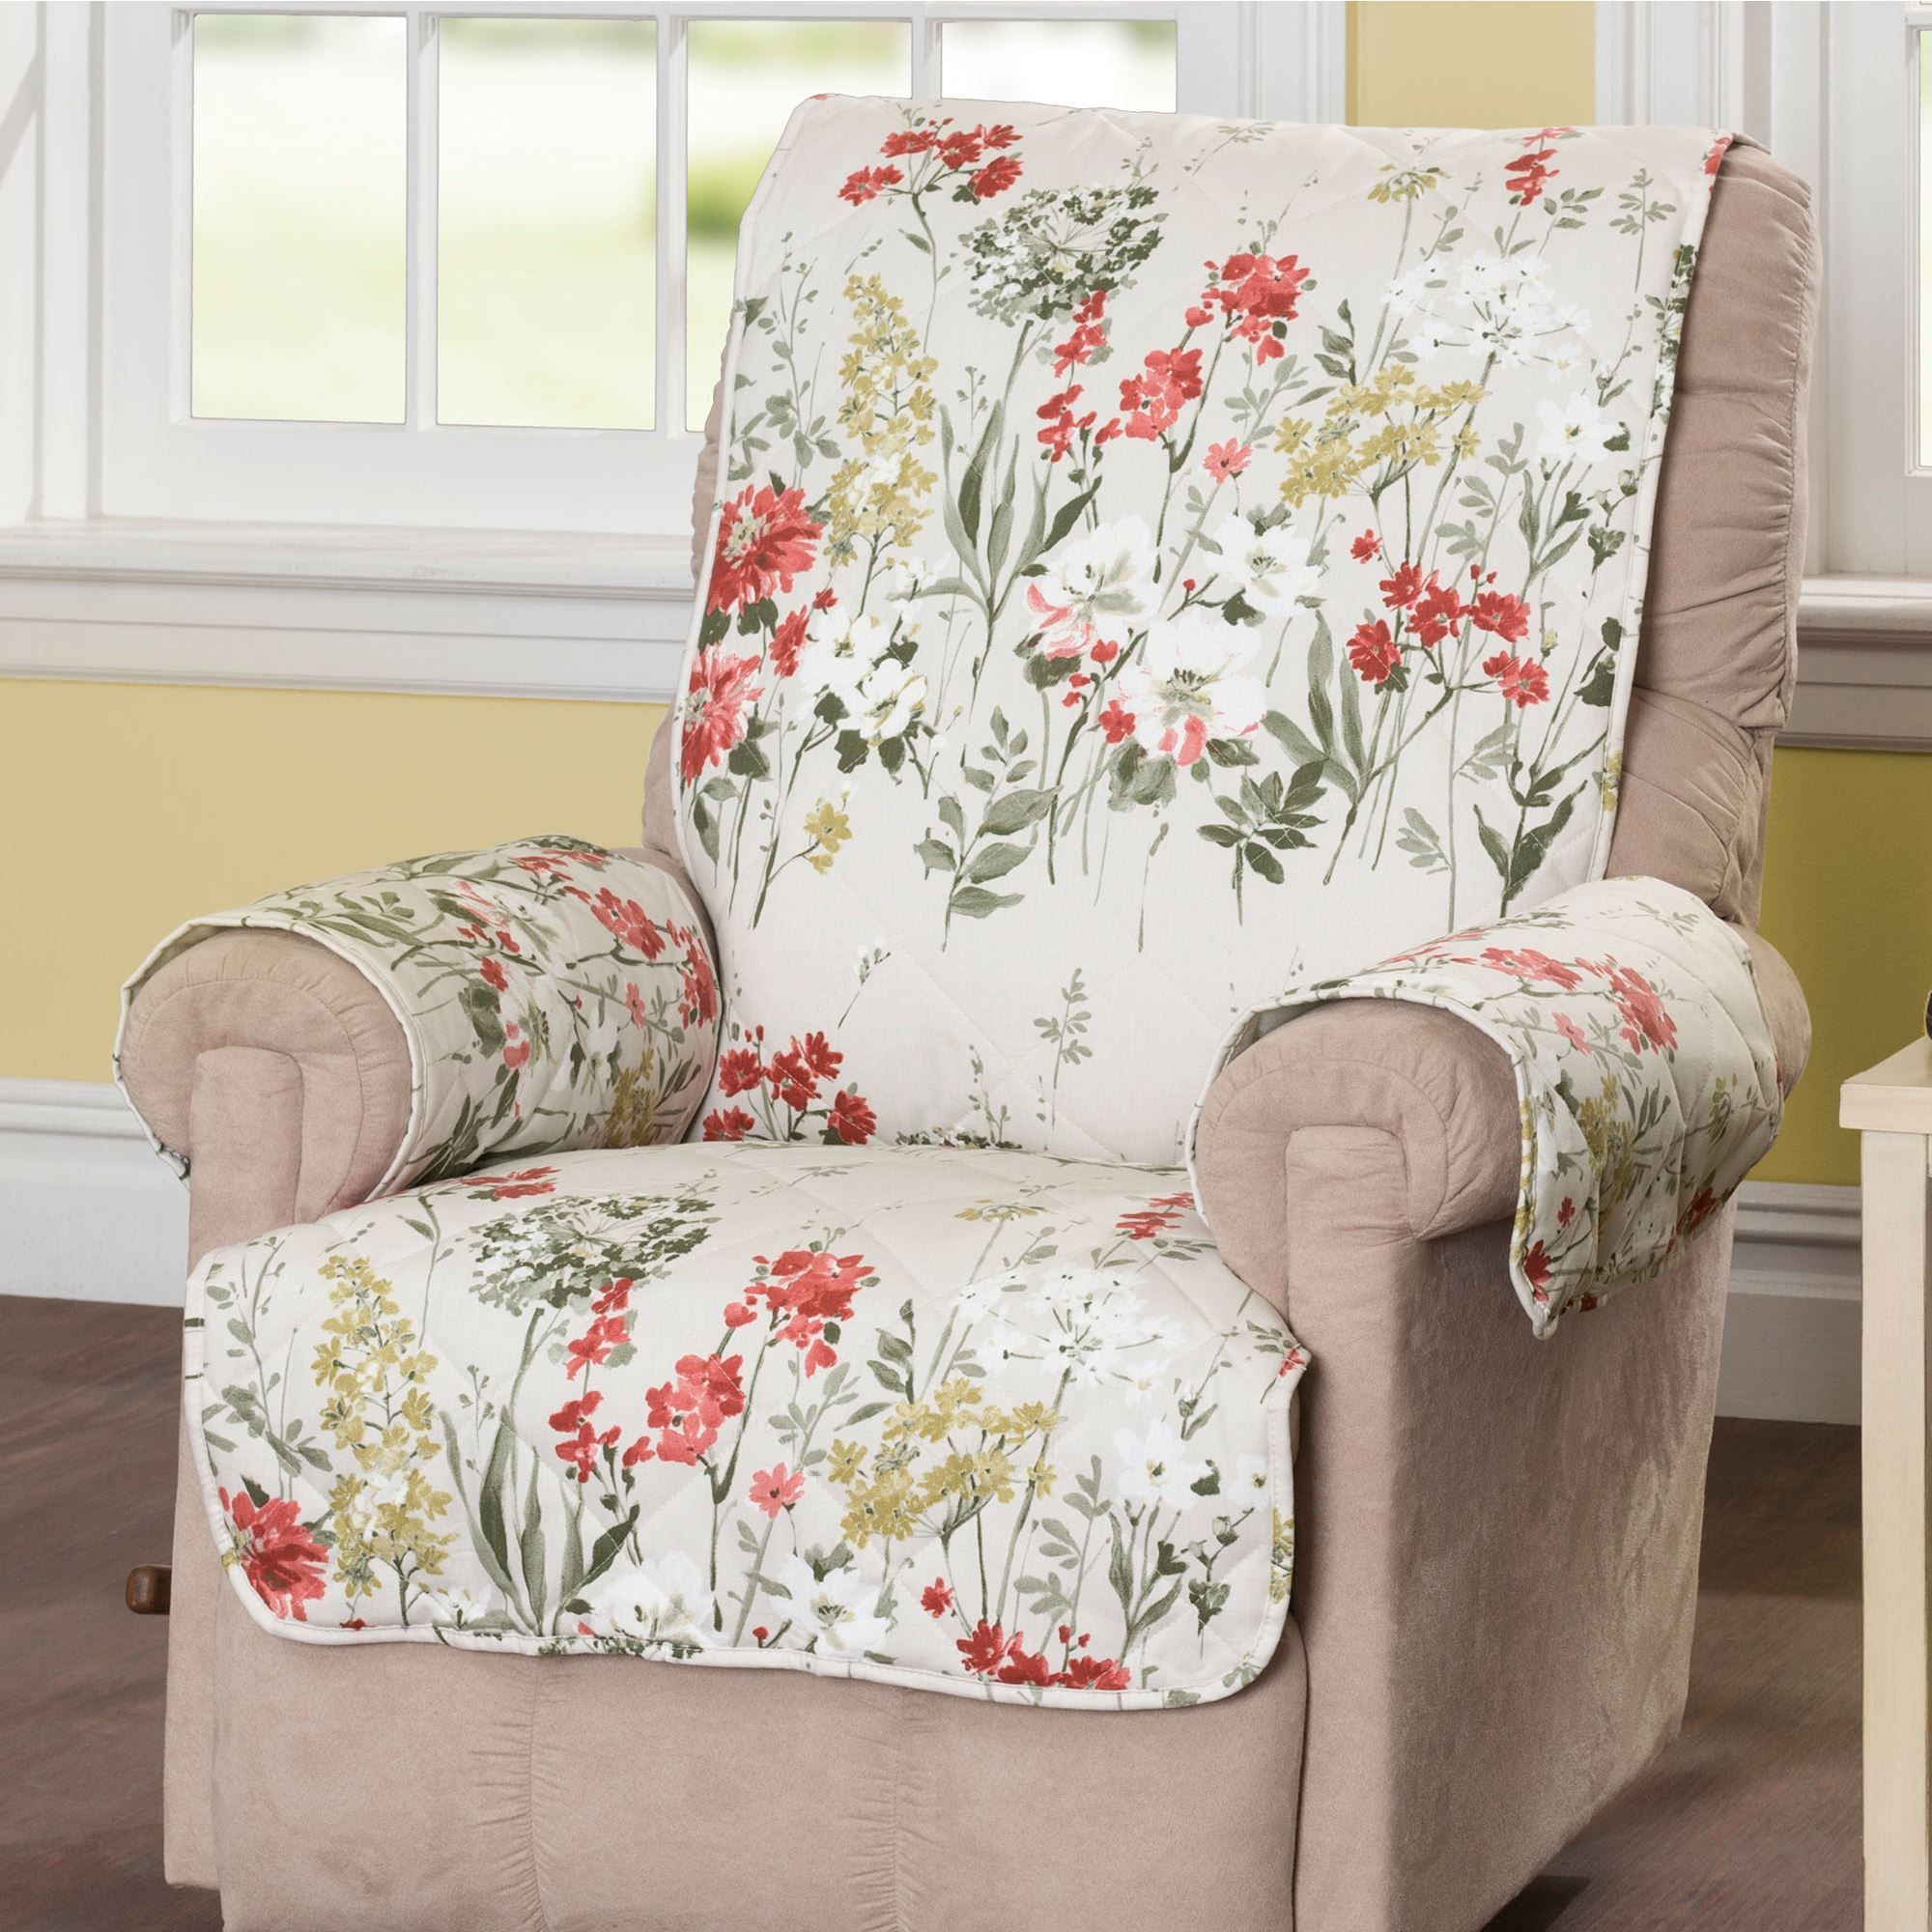 Floral Wingback Chair Floral Meadow Furniture Protector Off White Recliner Wing